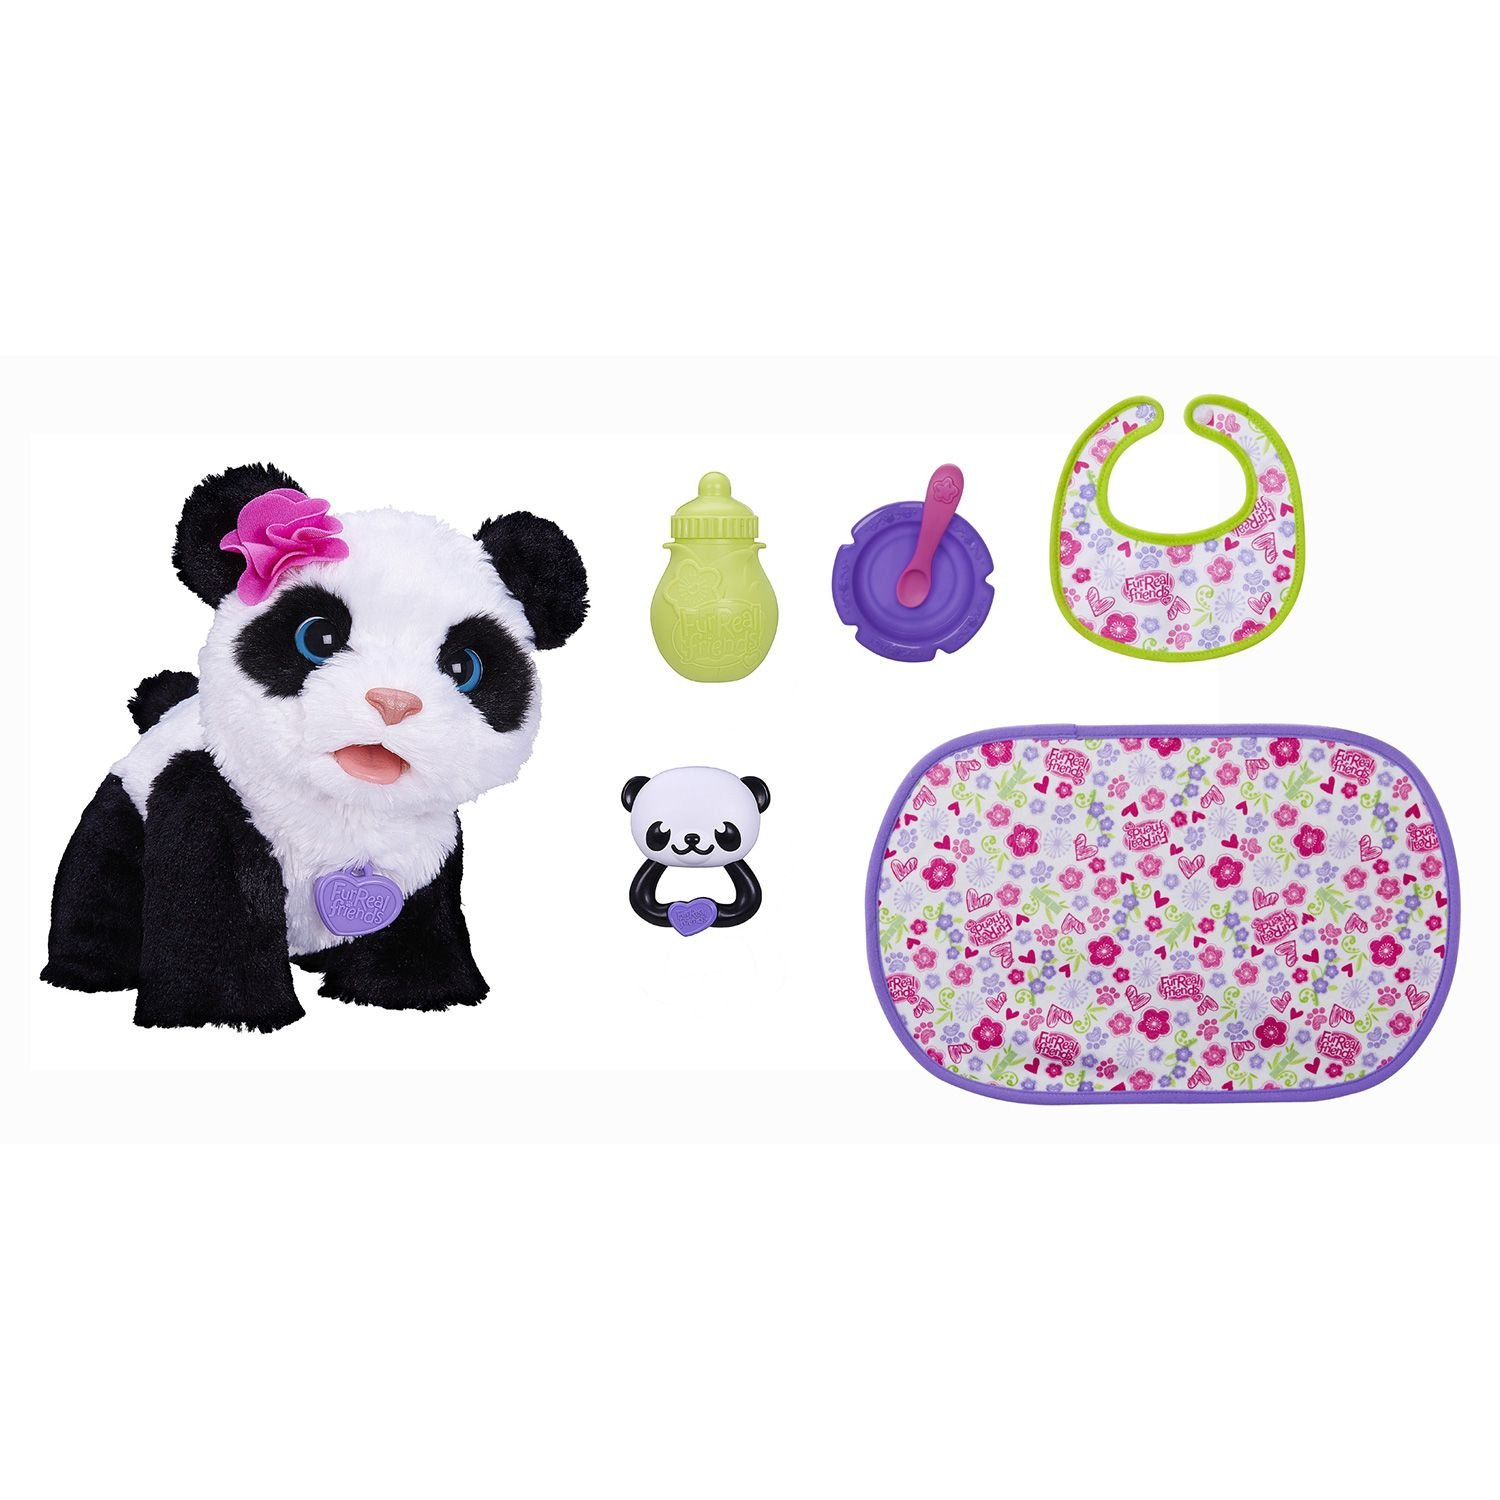 Fur Real Friends Pom Pom My Baby Panda Deluxe Set Panda Pet Plush by FurReal (Image #2)